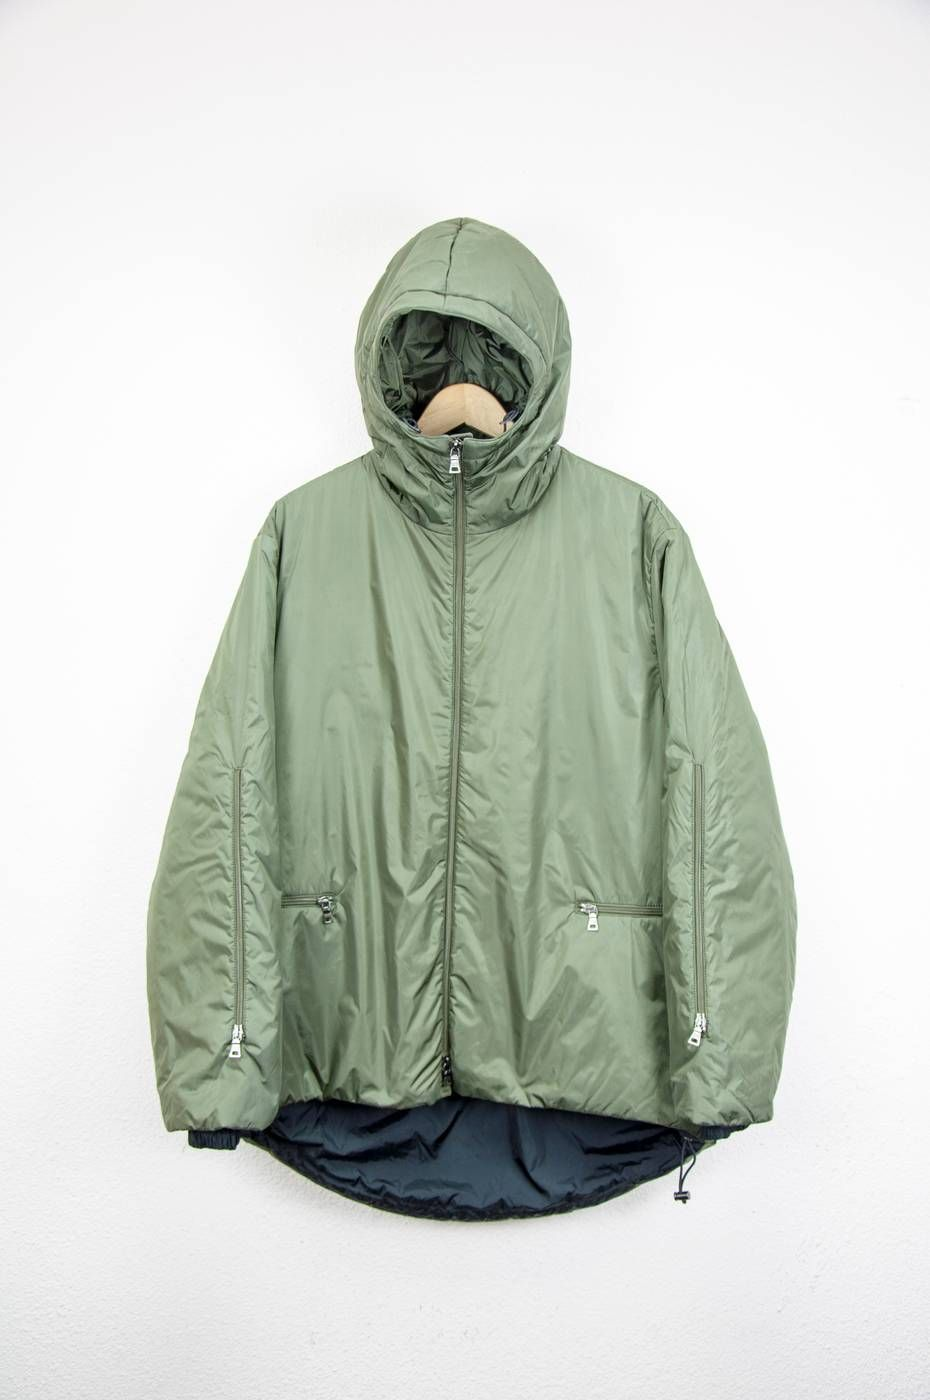 0b87473472fd Prada PRADA SPORT AW1999 PARKA DOWN JACKET COAT PUFF PUFFER FOLDED TO BAG  Size US L / EU 52-54 / 3